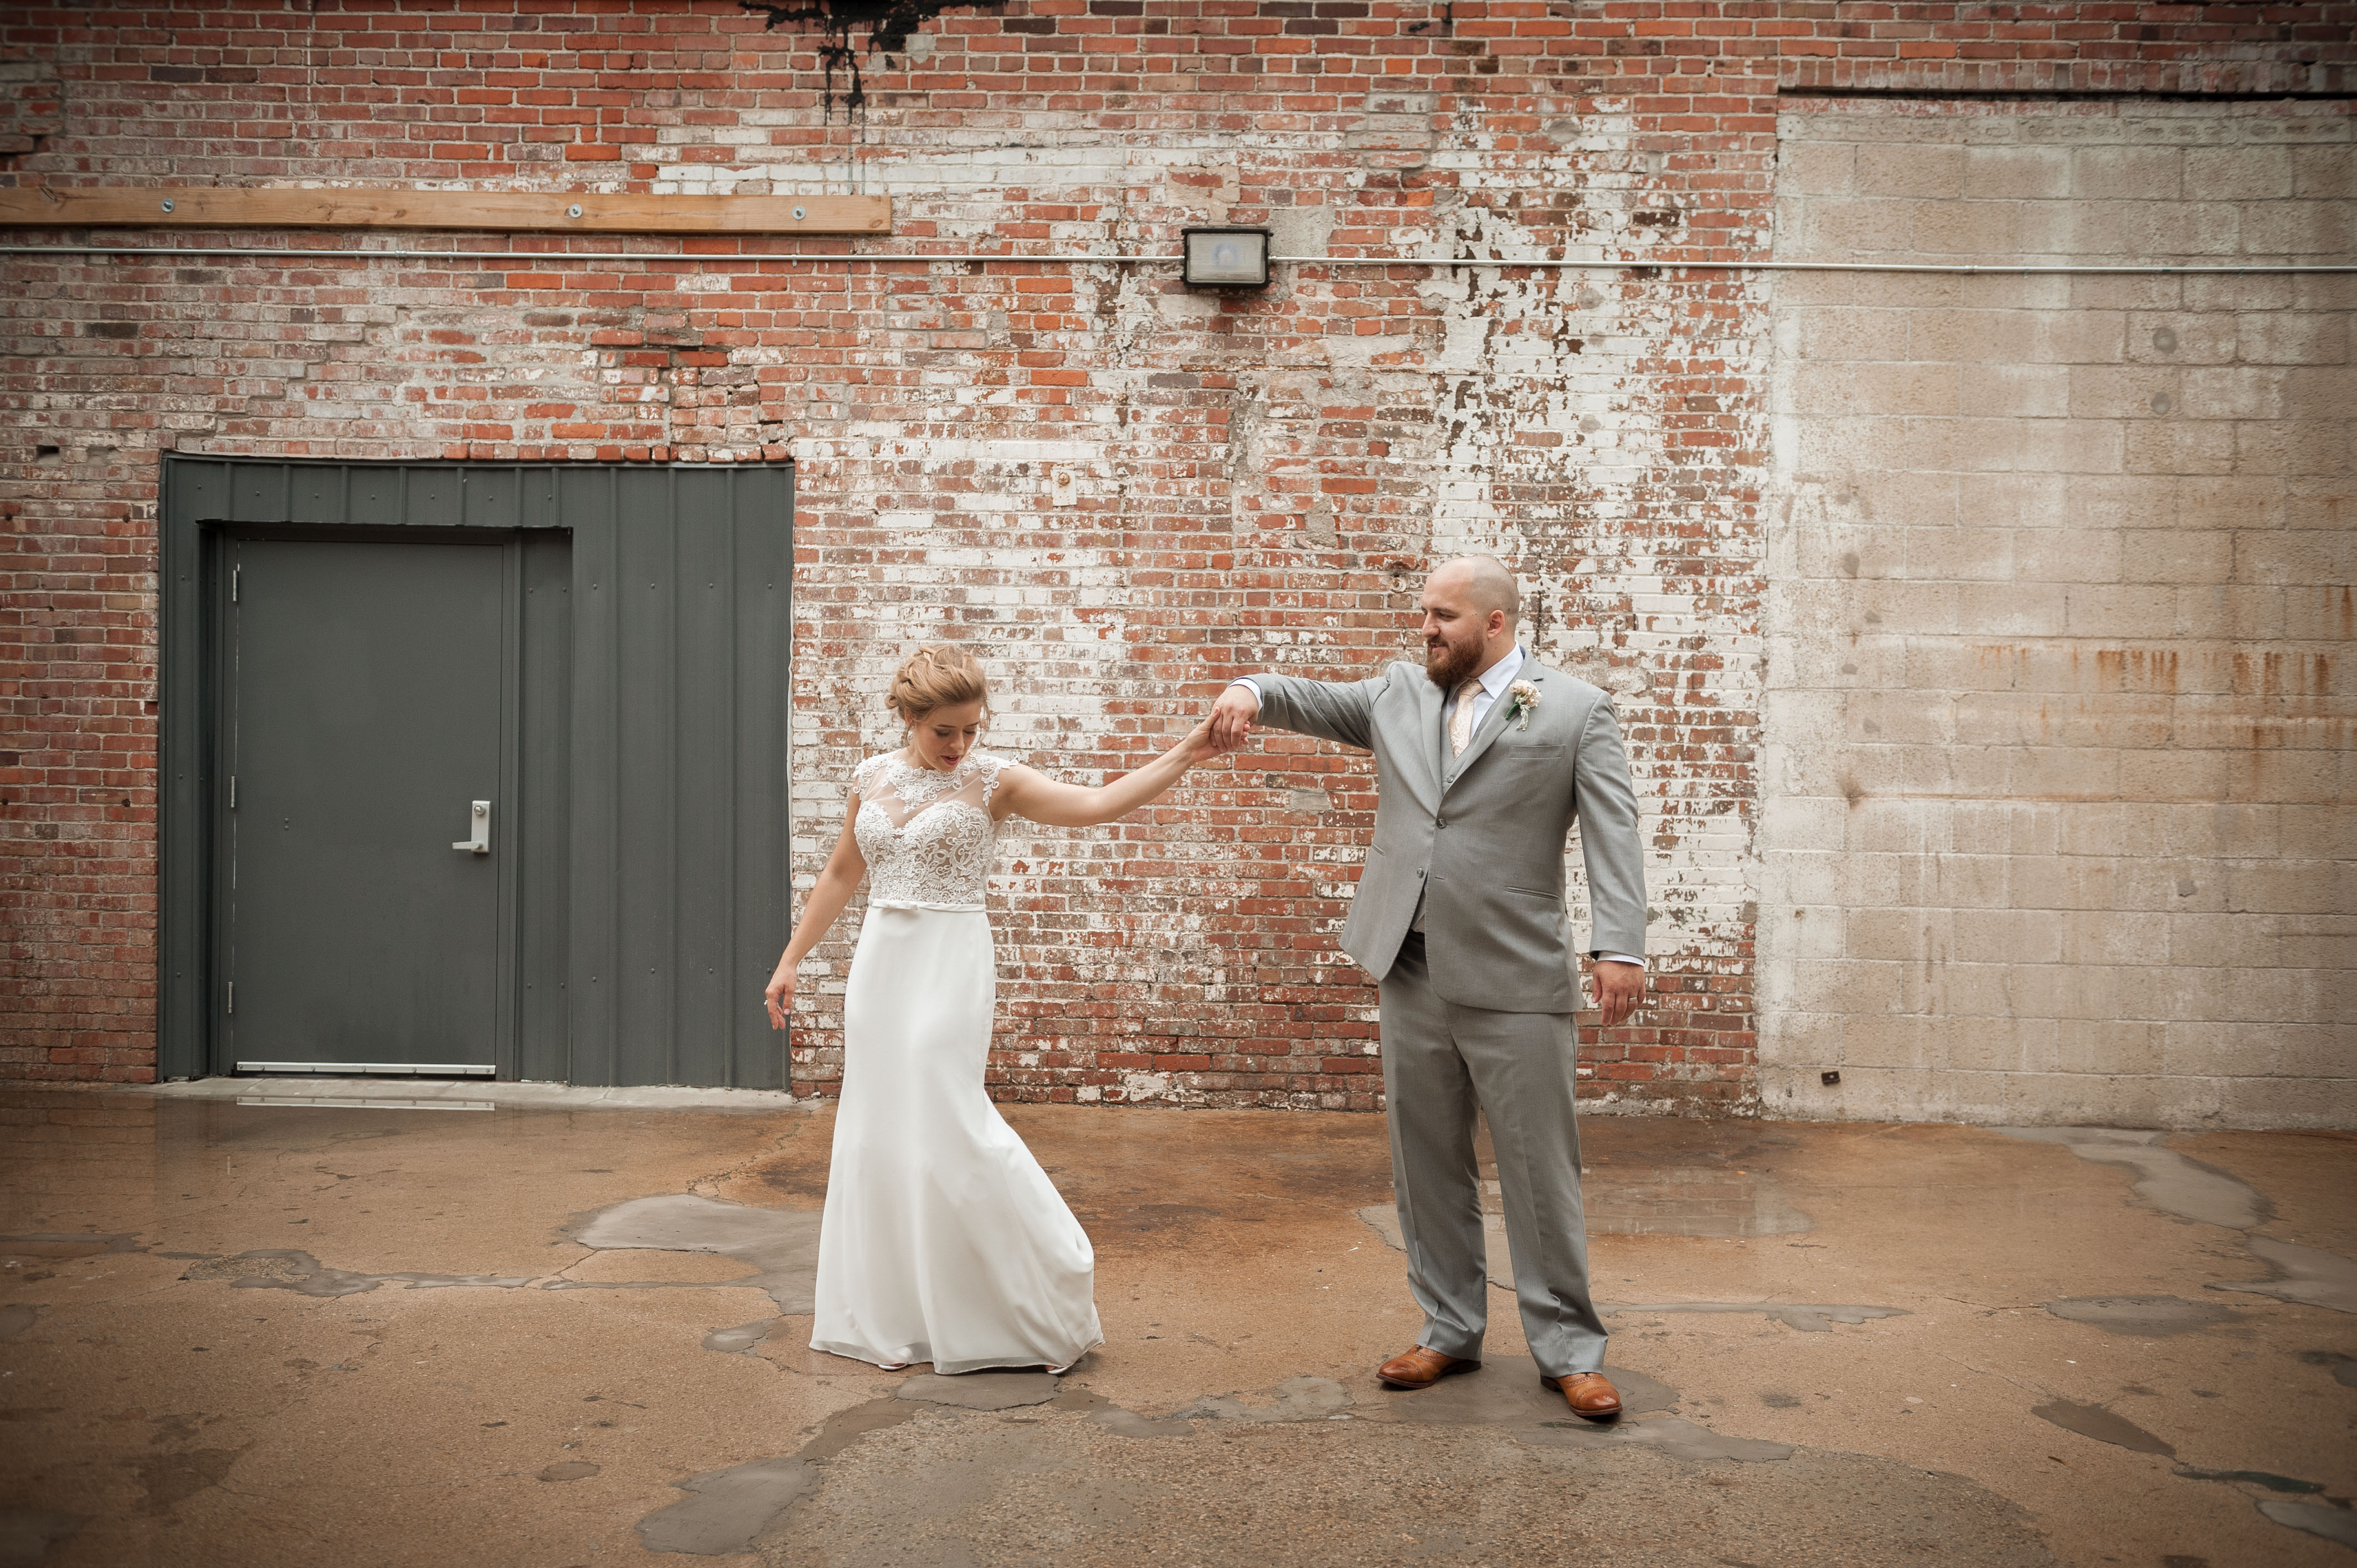 Bride and groom dancing in front of rustic brick warehouse